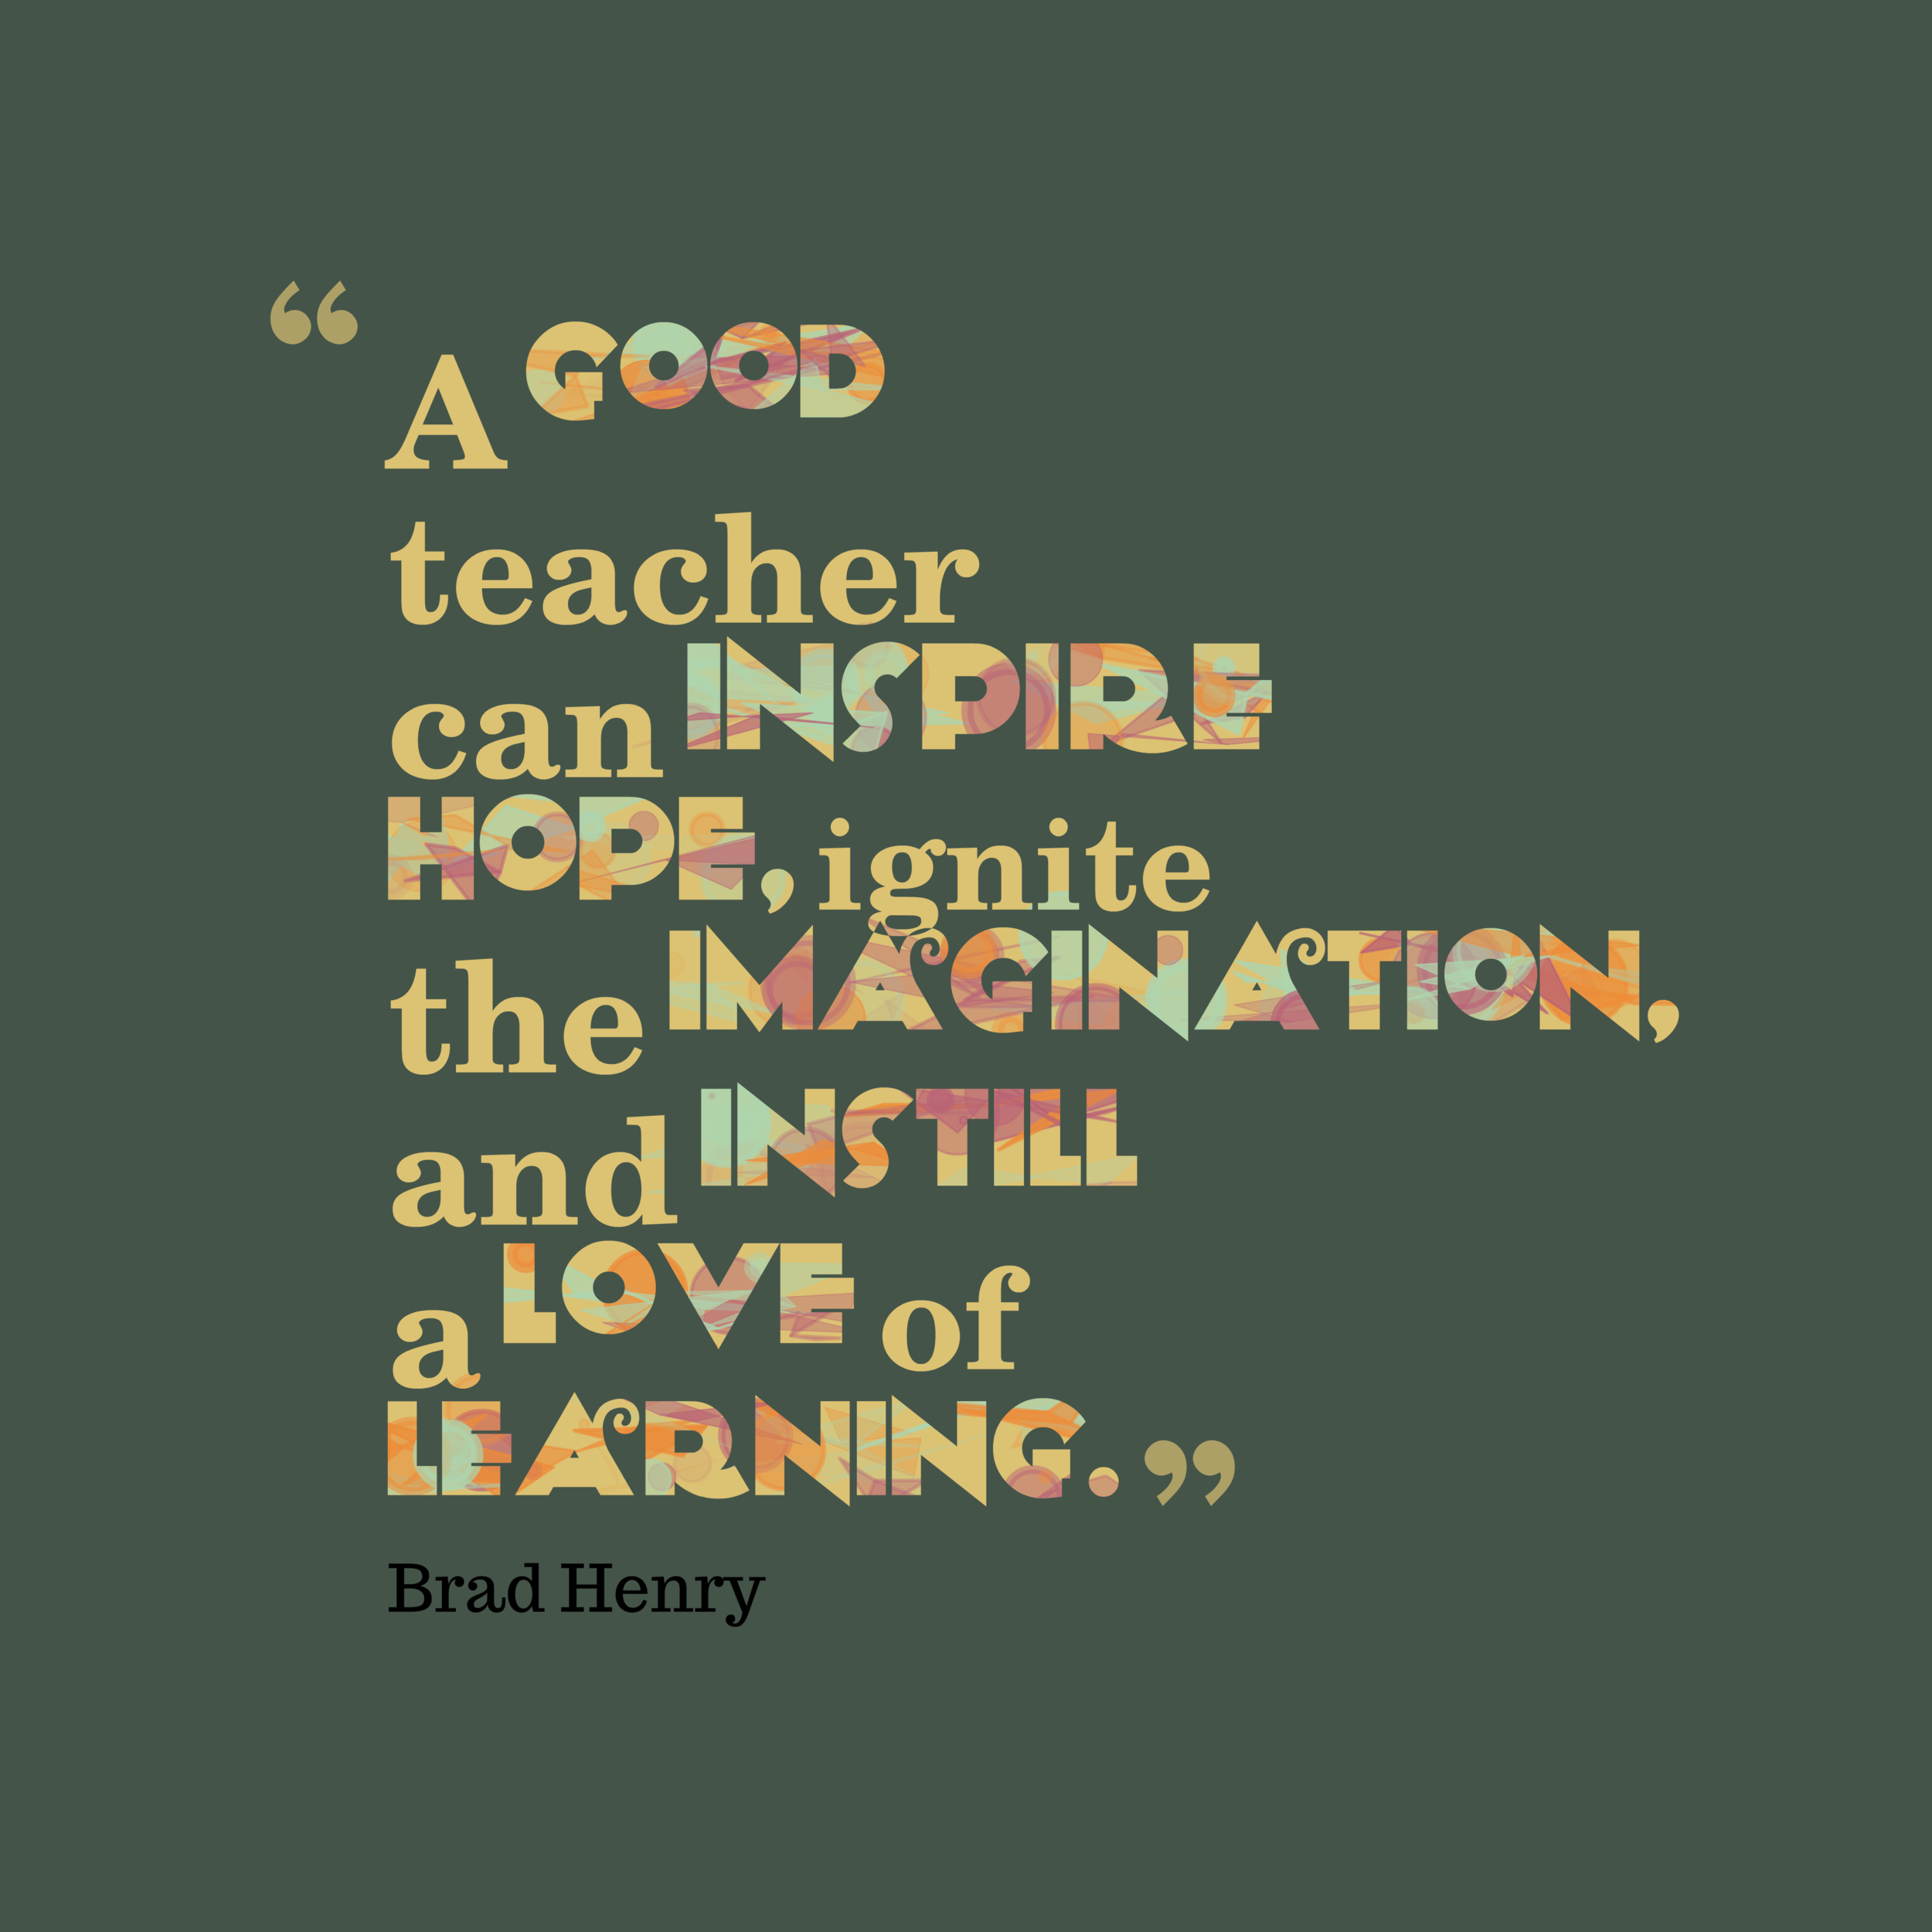 A-good-teacher-can-inspire__quotes-by-Brad-Henry-55.png